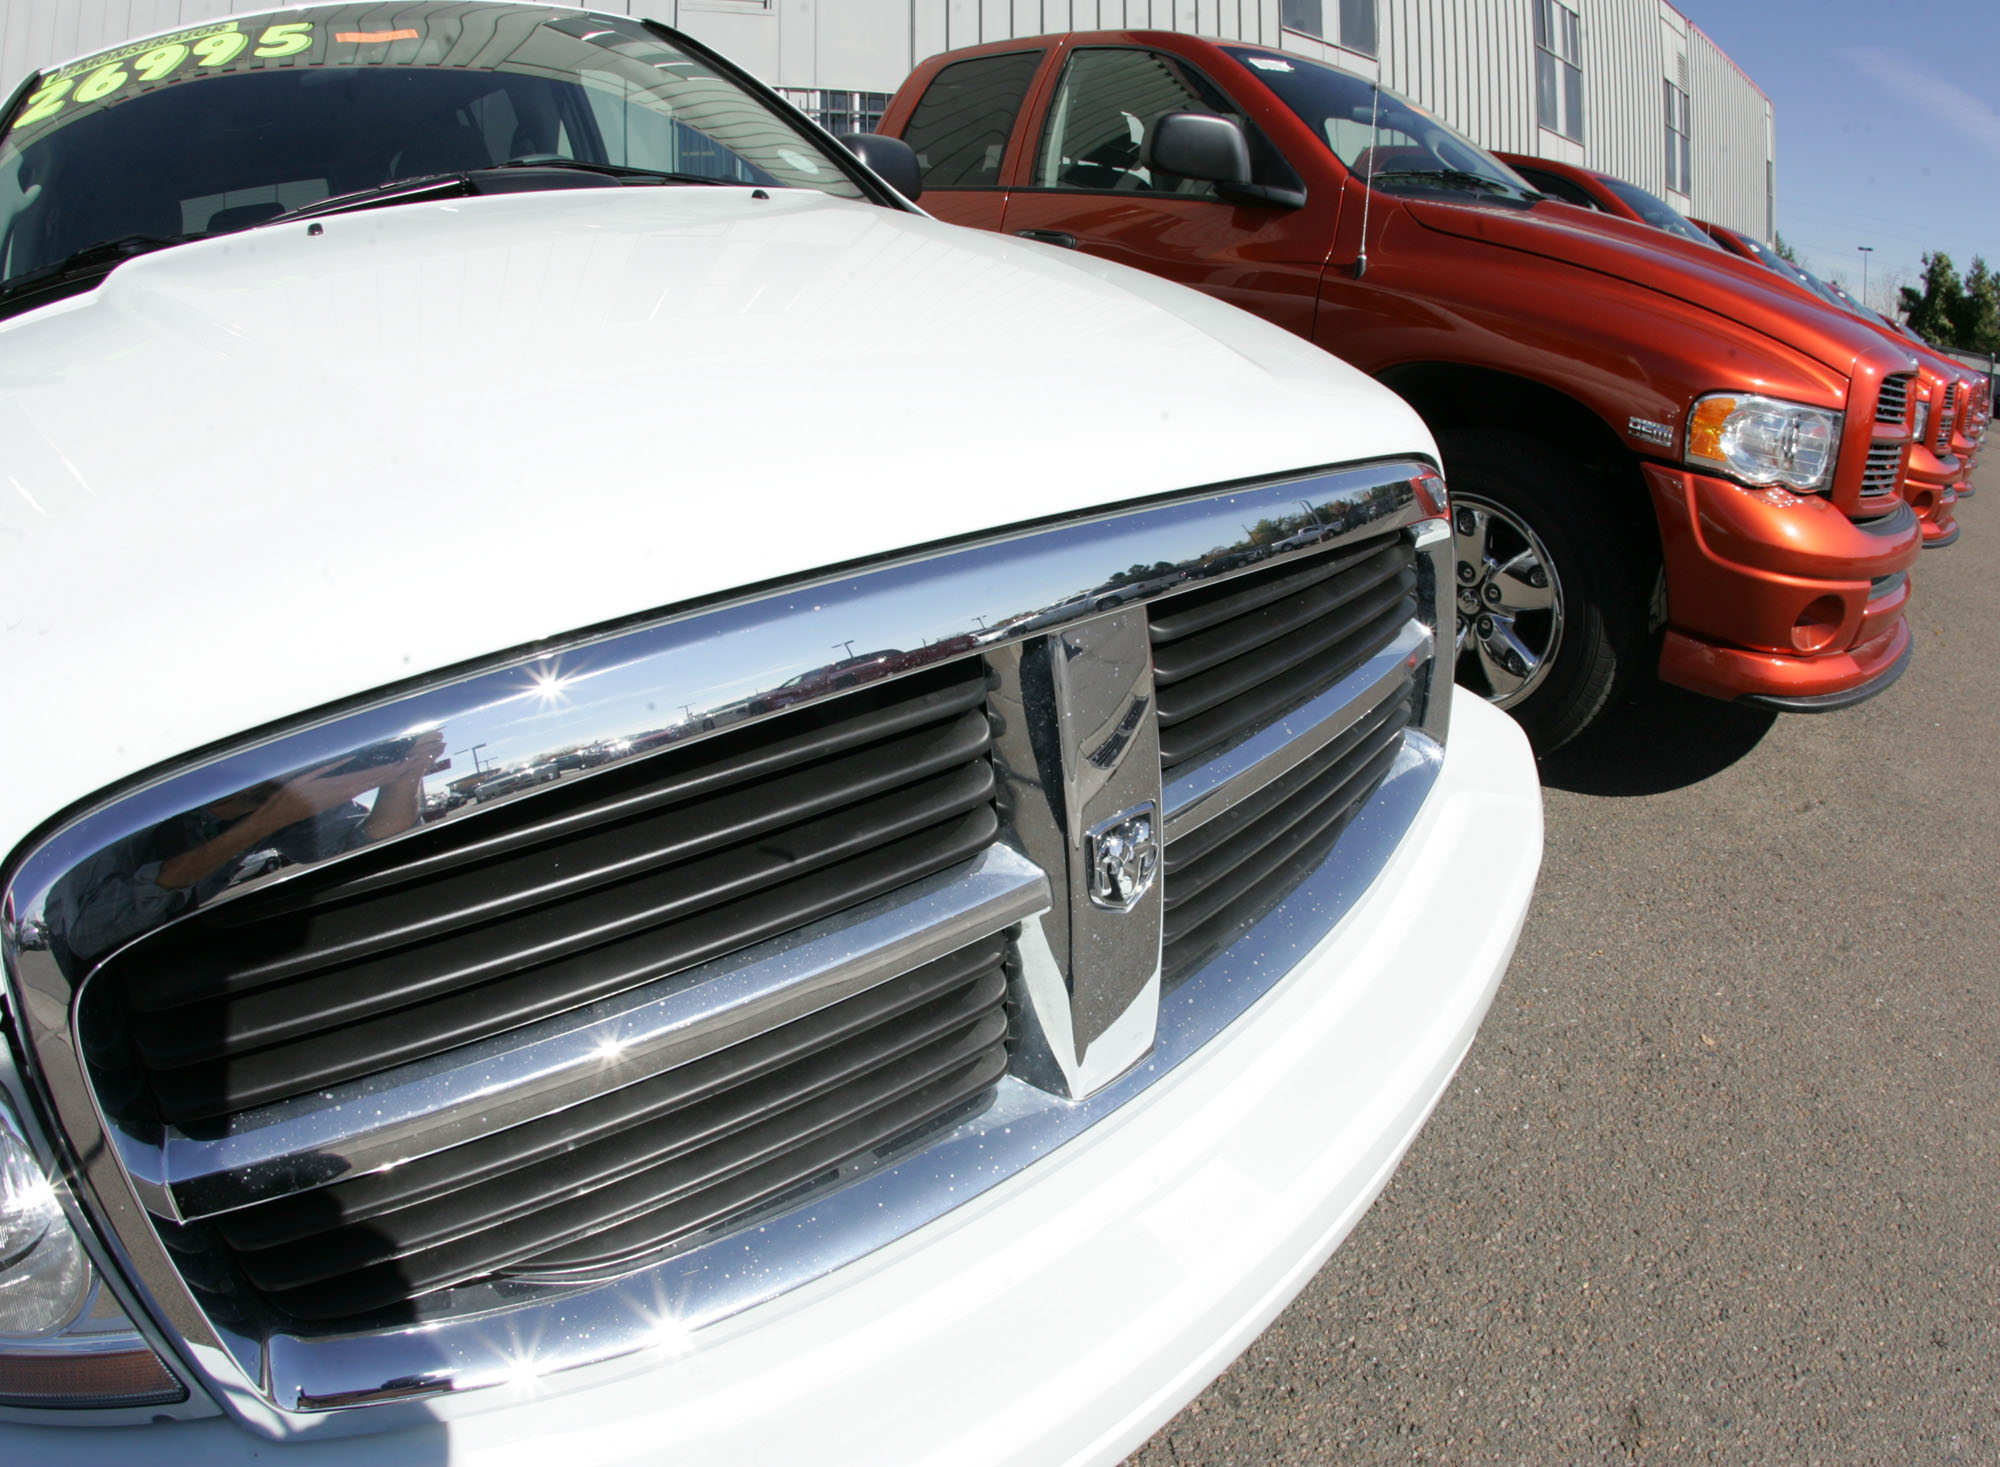 Chrysler agrees to expand air bag recall (AP Photo/David Zalubowski, File)